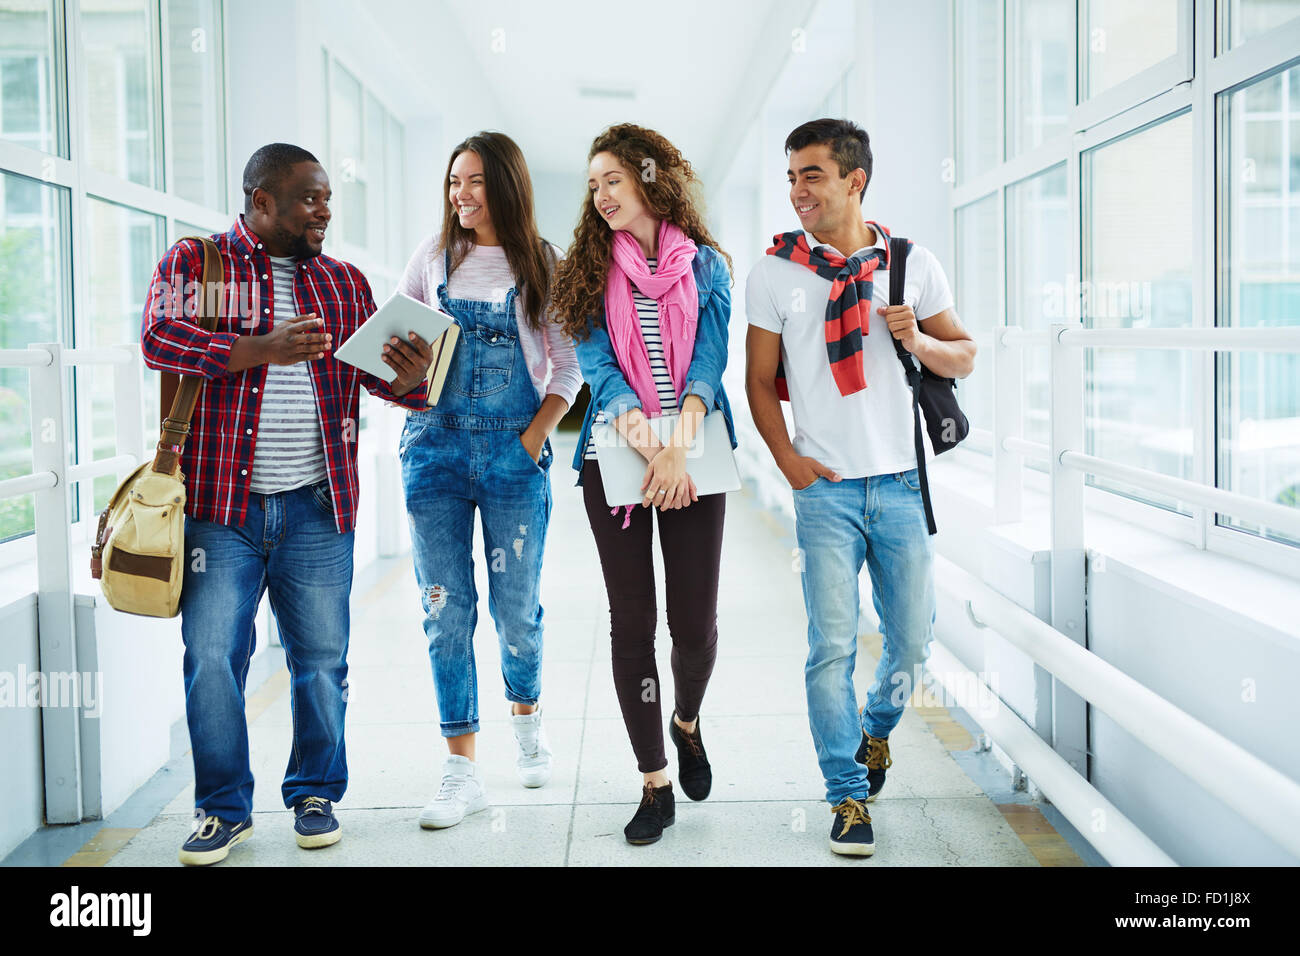 Happy high school learners walking down college corridor and chatting during break - Stock Image